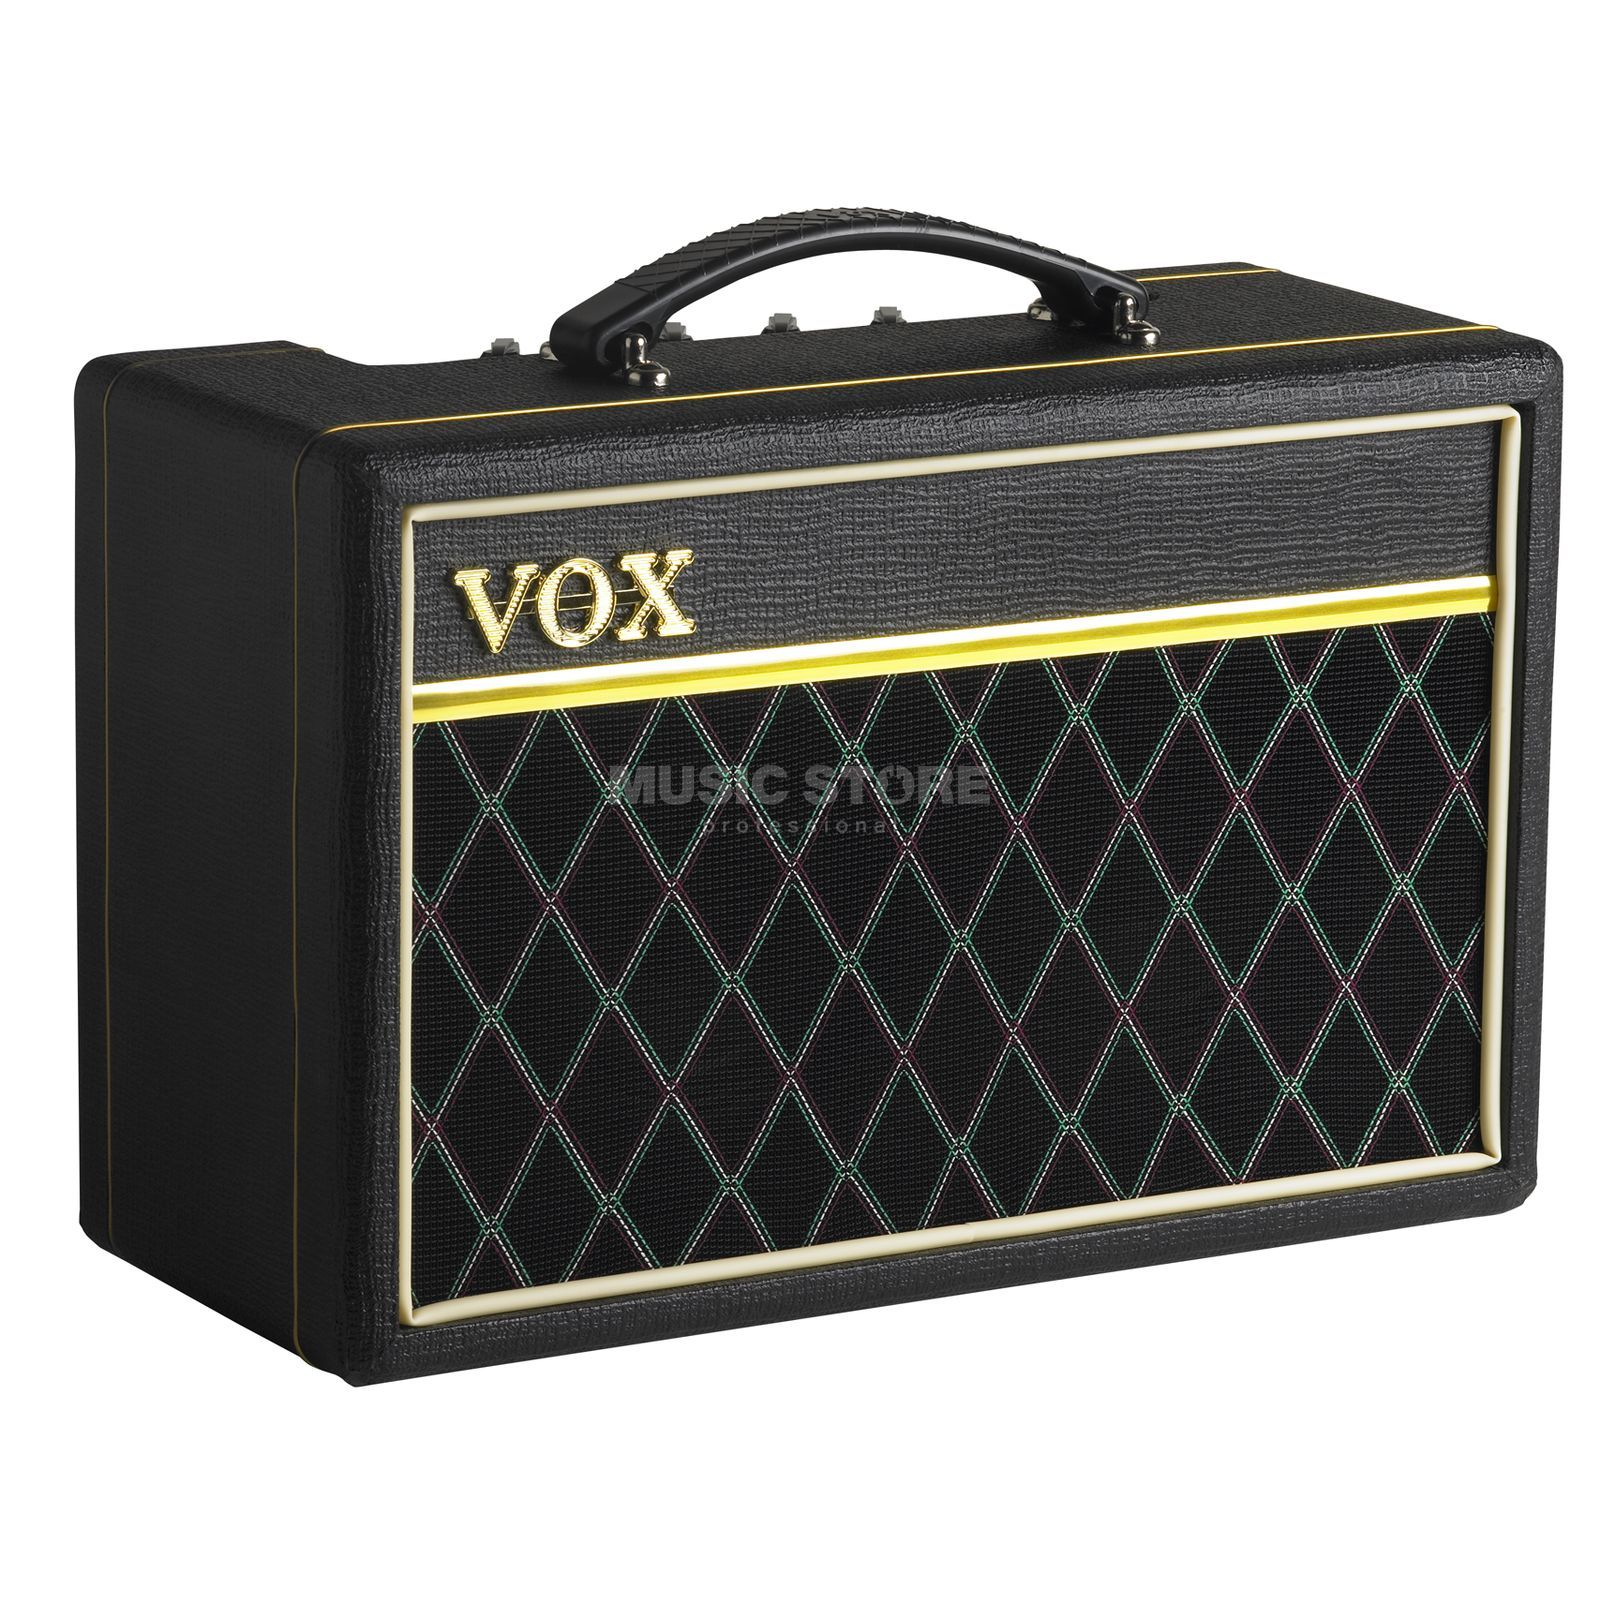 VOX Pathfinder Bass 10    Product Image